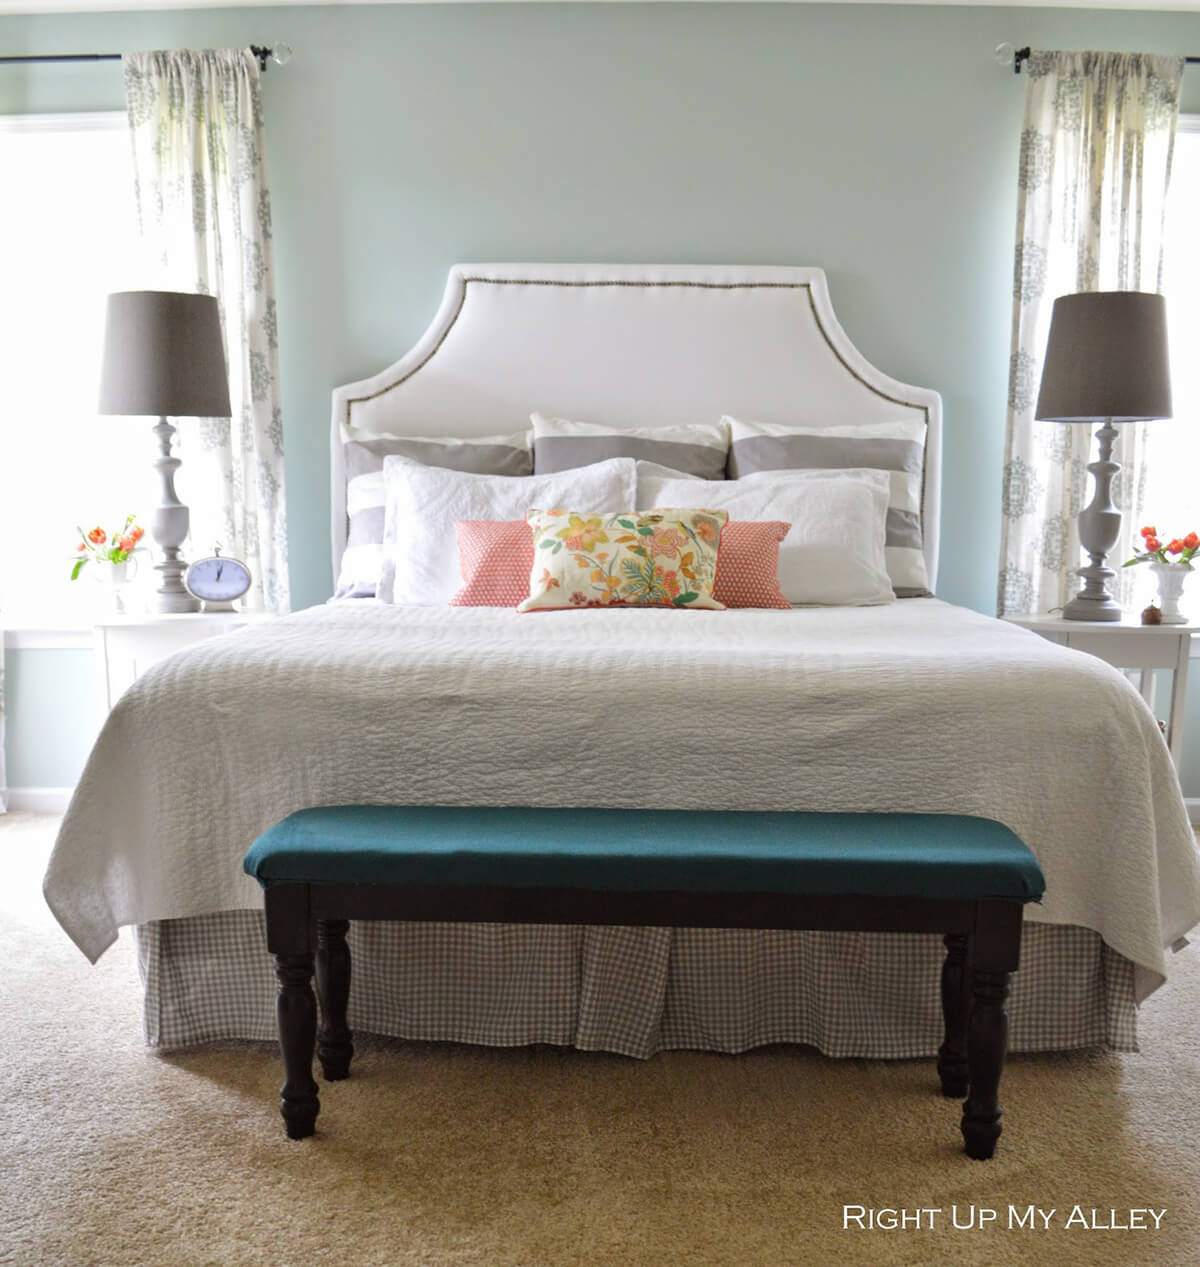 25 Best Cozy Bedroom Decor Ideas and Designs for 2020 on Main Bedroom Decor  id=55541